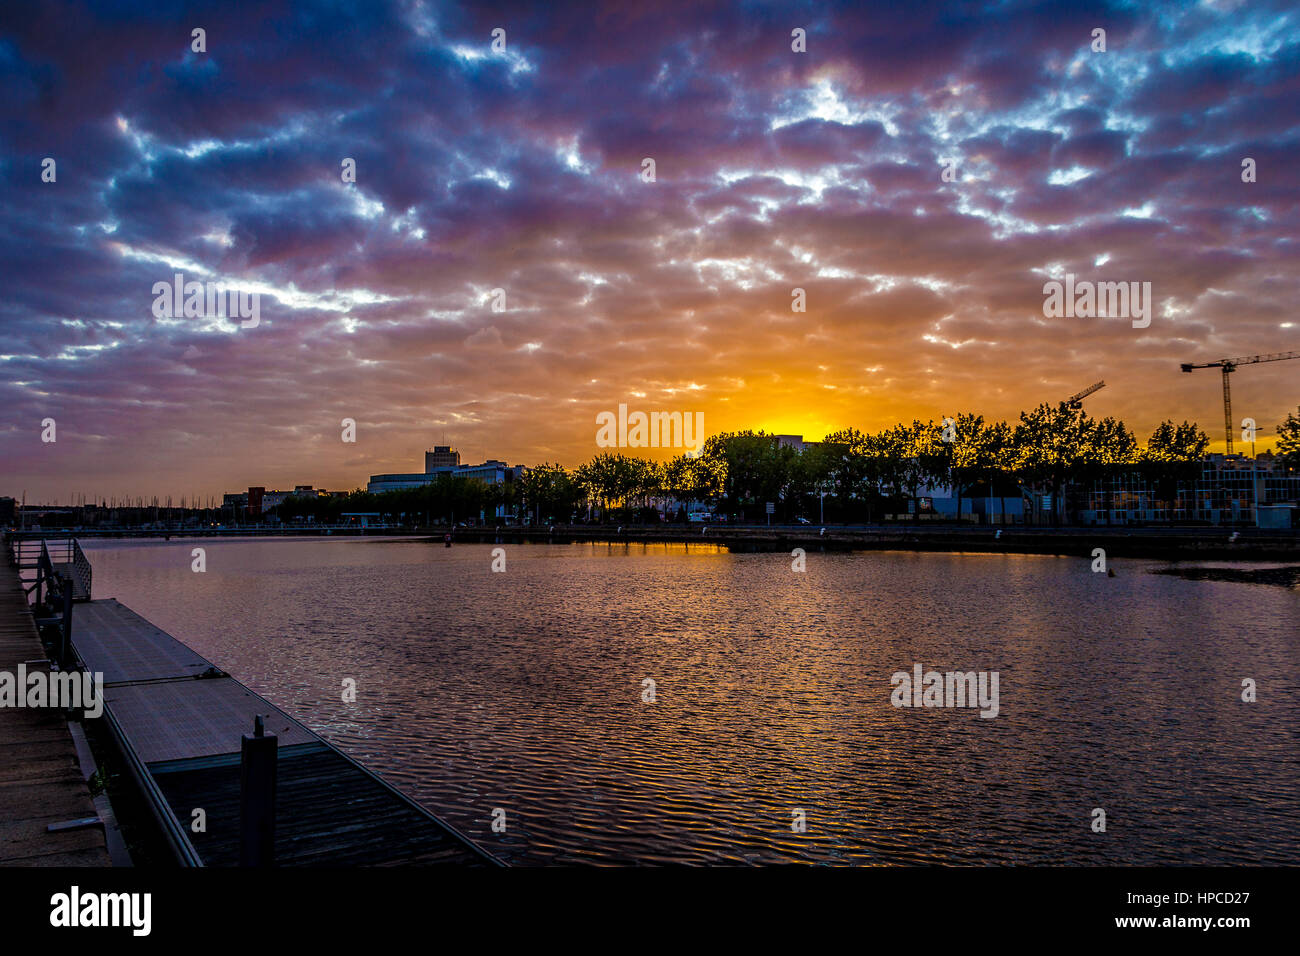 Sunset at the marina of Le Havre, Normandy, France - Stock Image